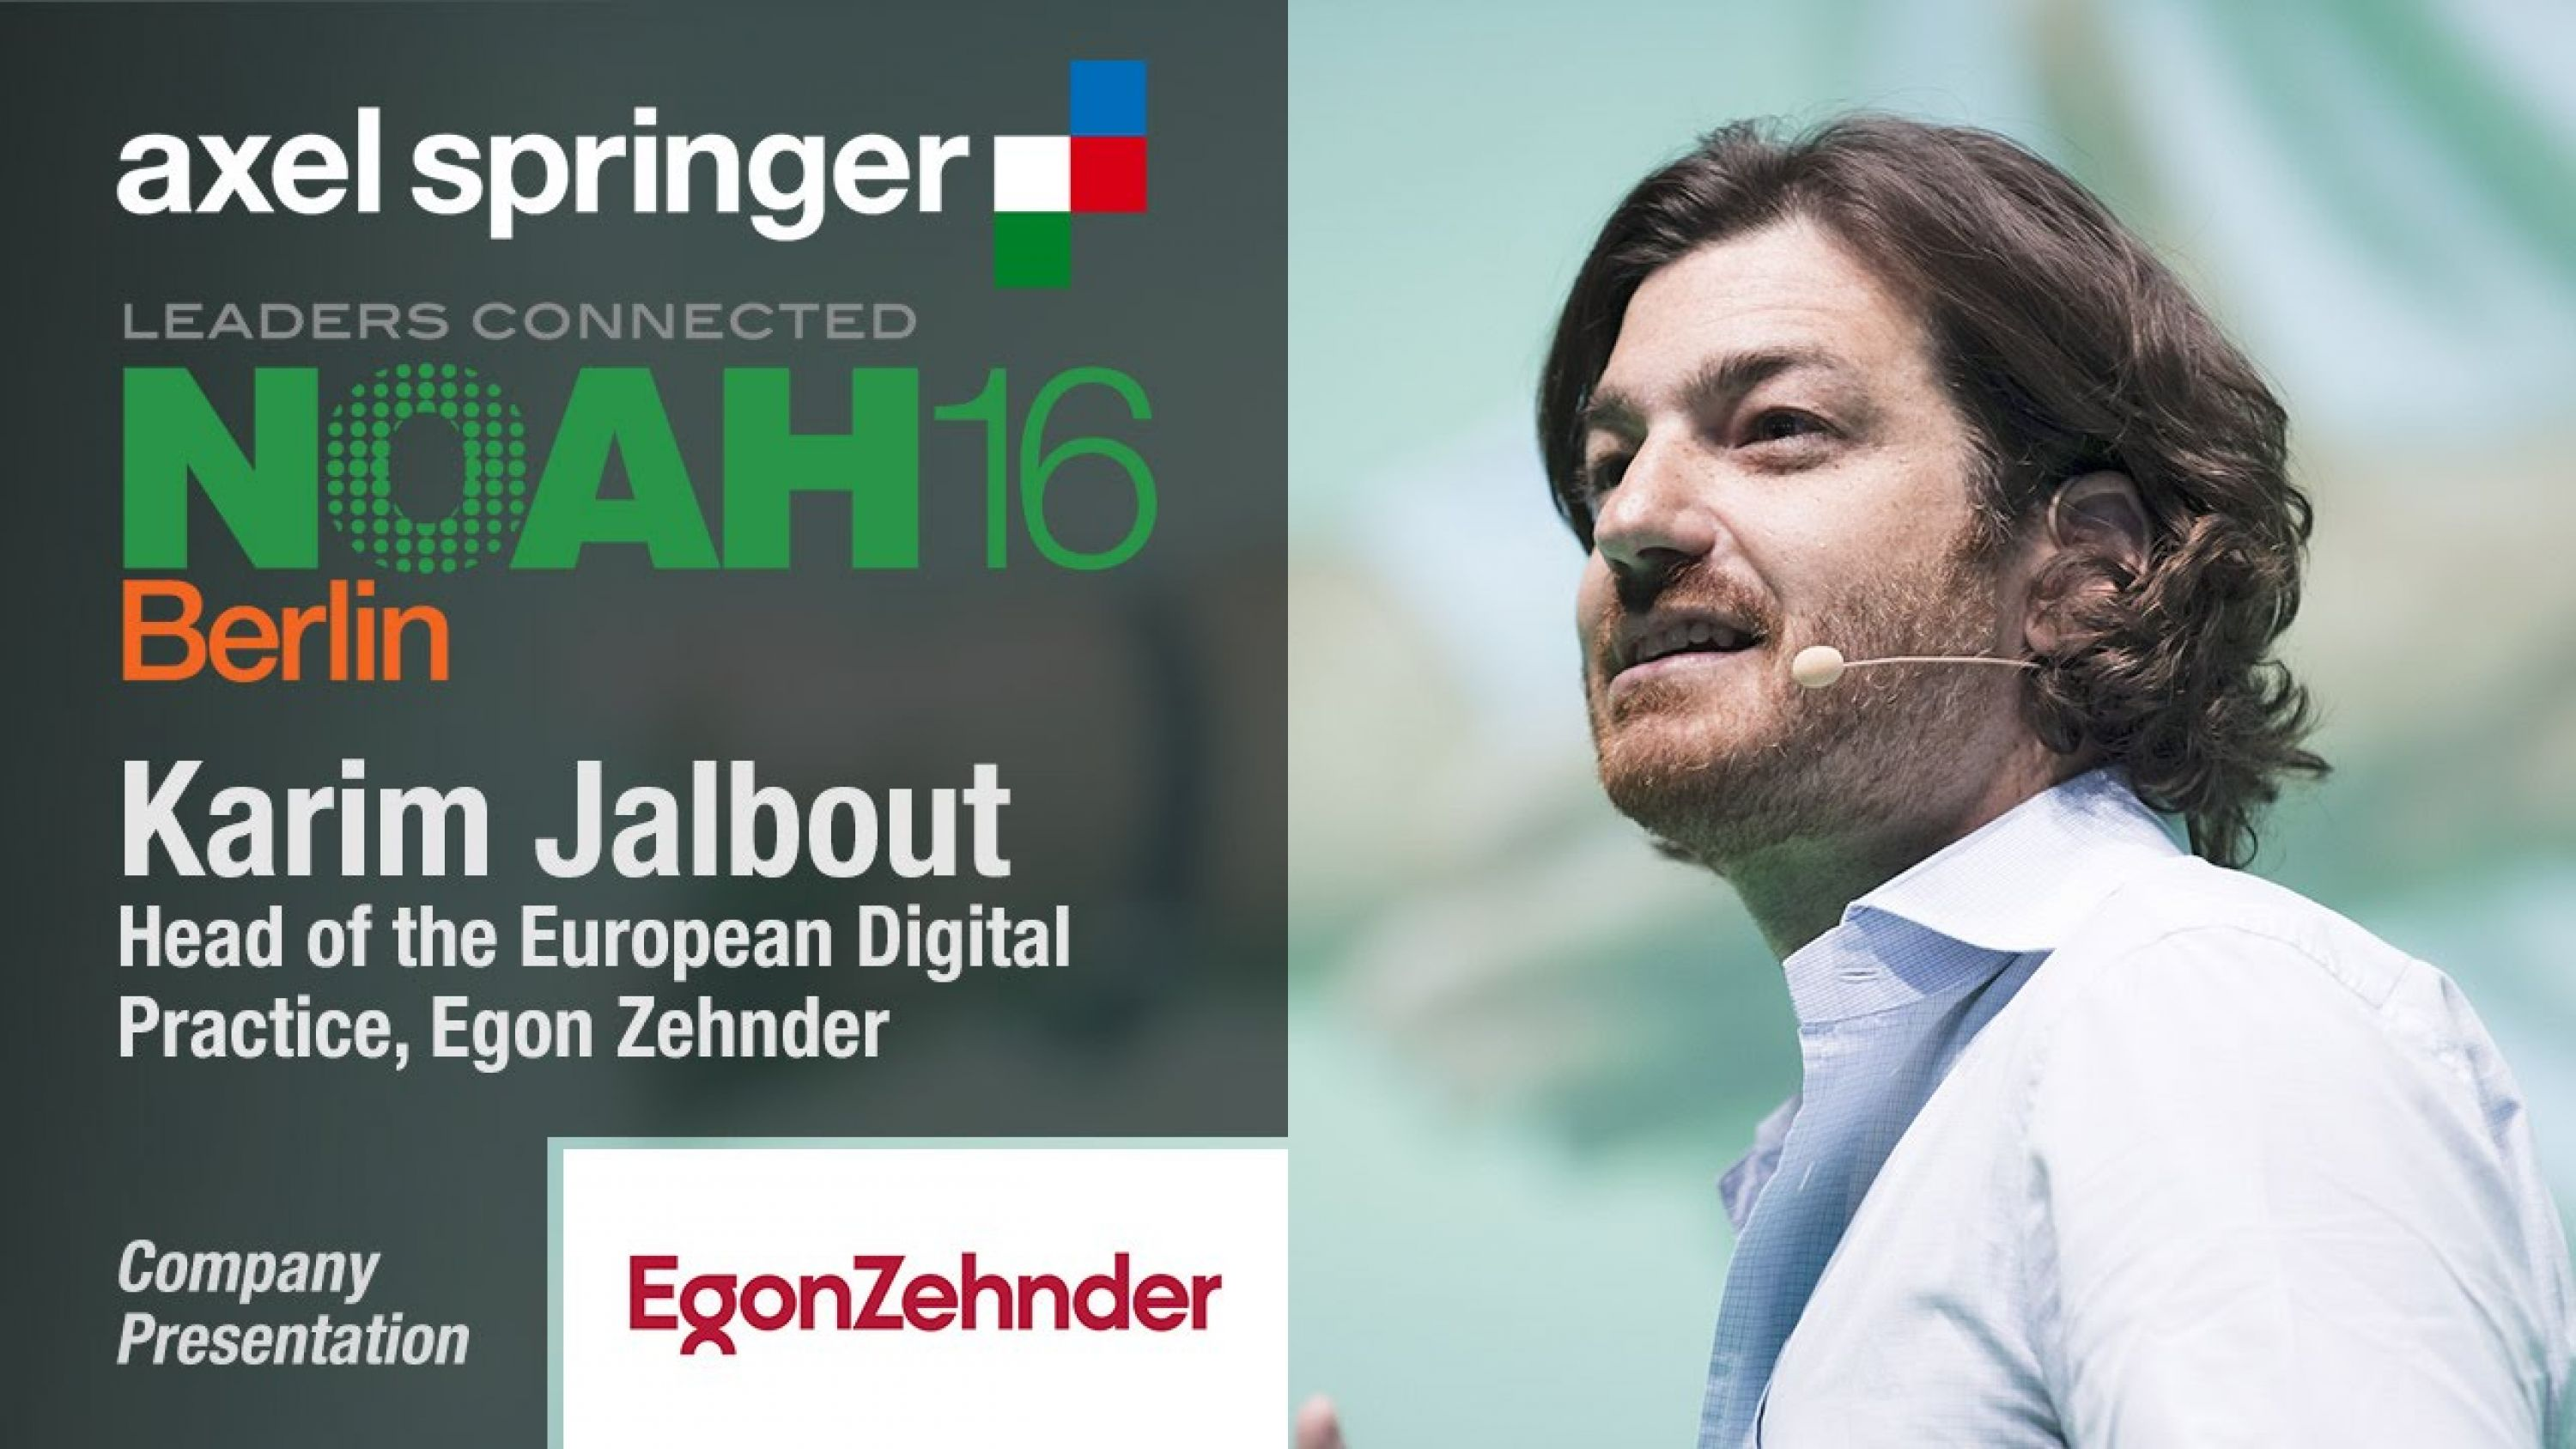 """NOAH16 Berlin / Keynote summary: Leadership potential in entrepreneurs. """"You have to hire on potential"""""""